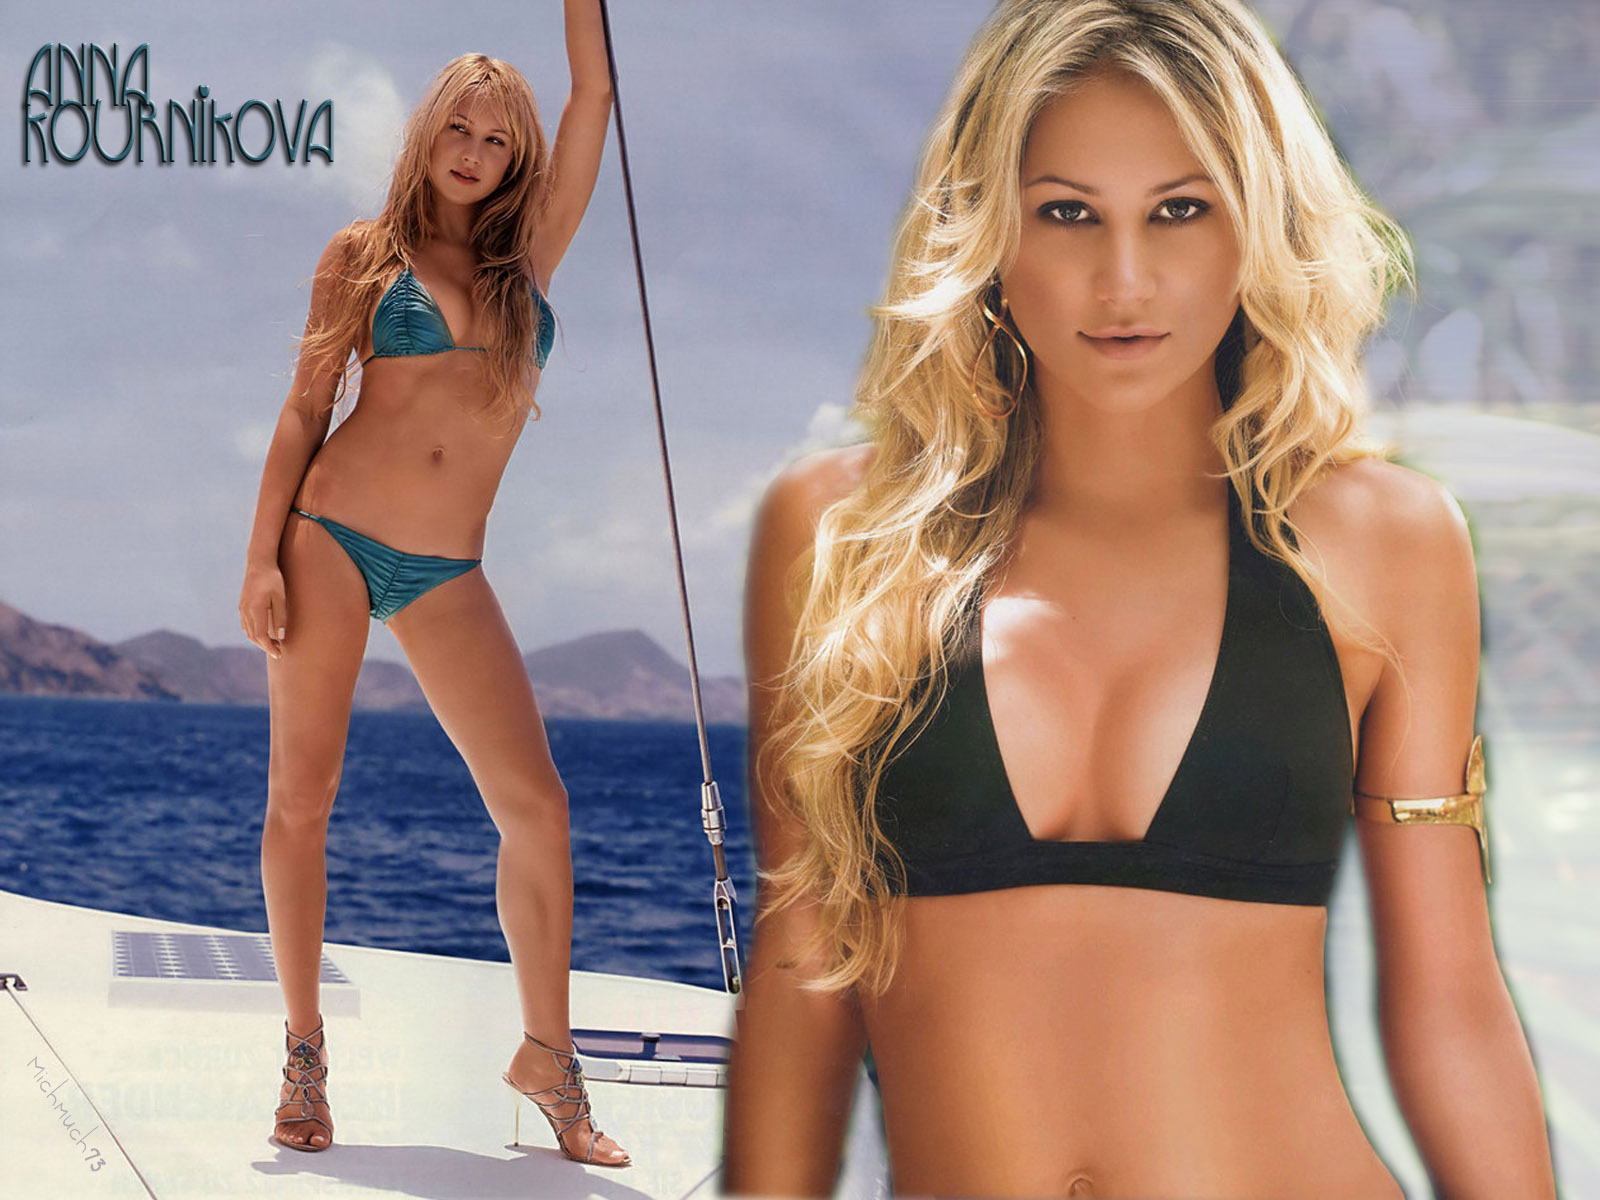 HD Wallpapers: Anna Kournikova Hot